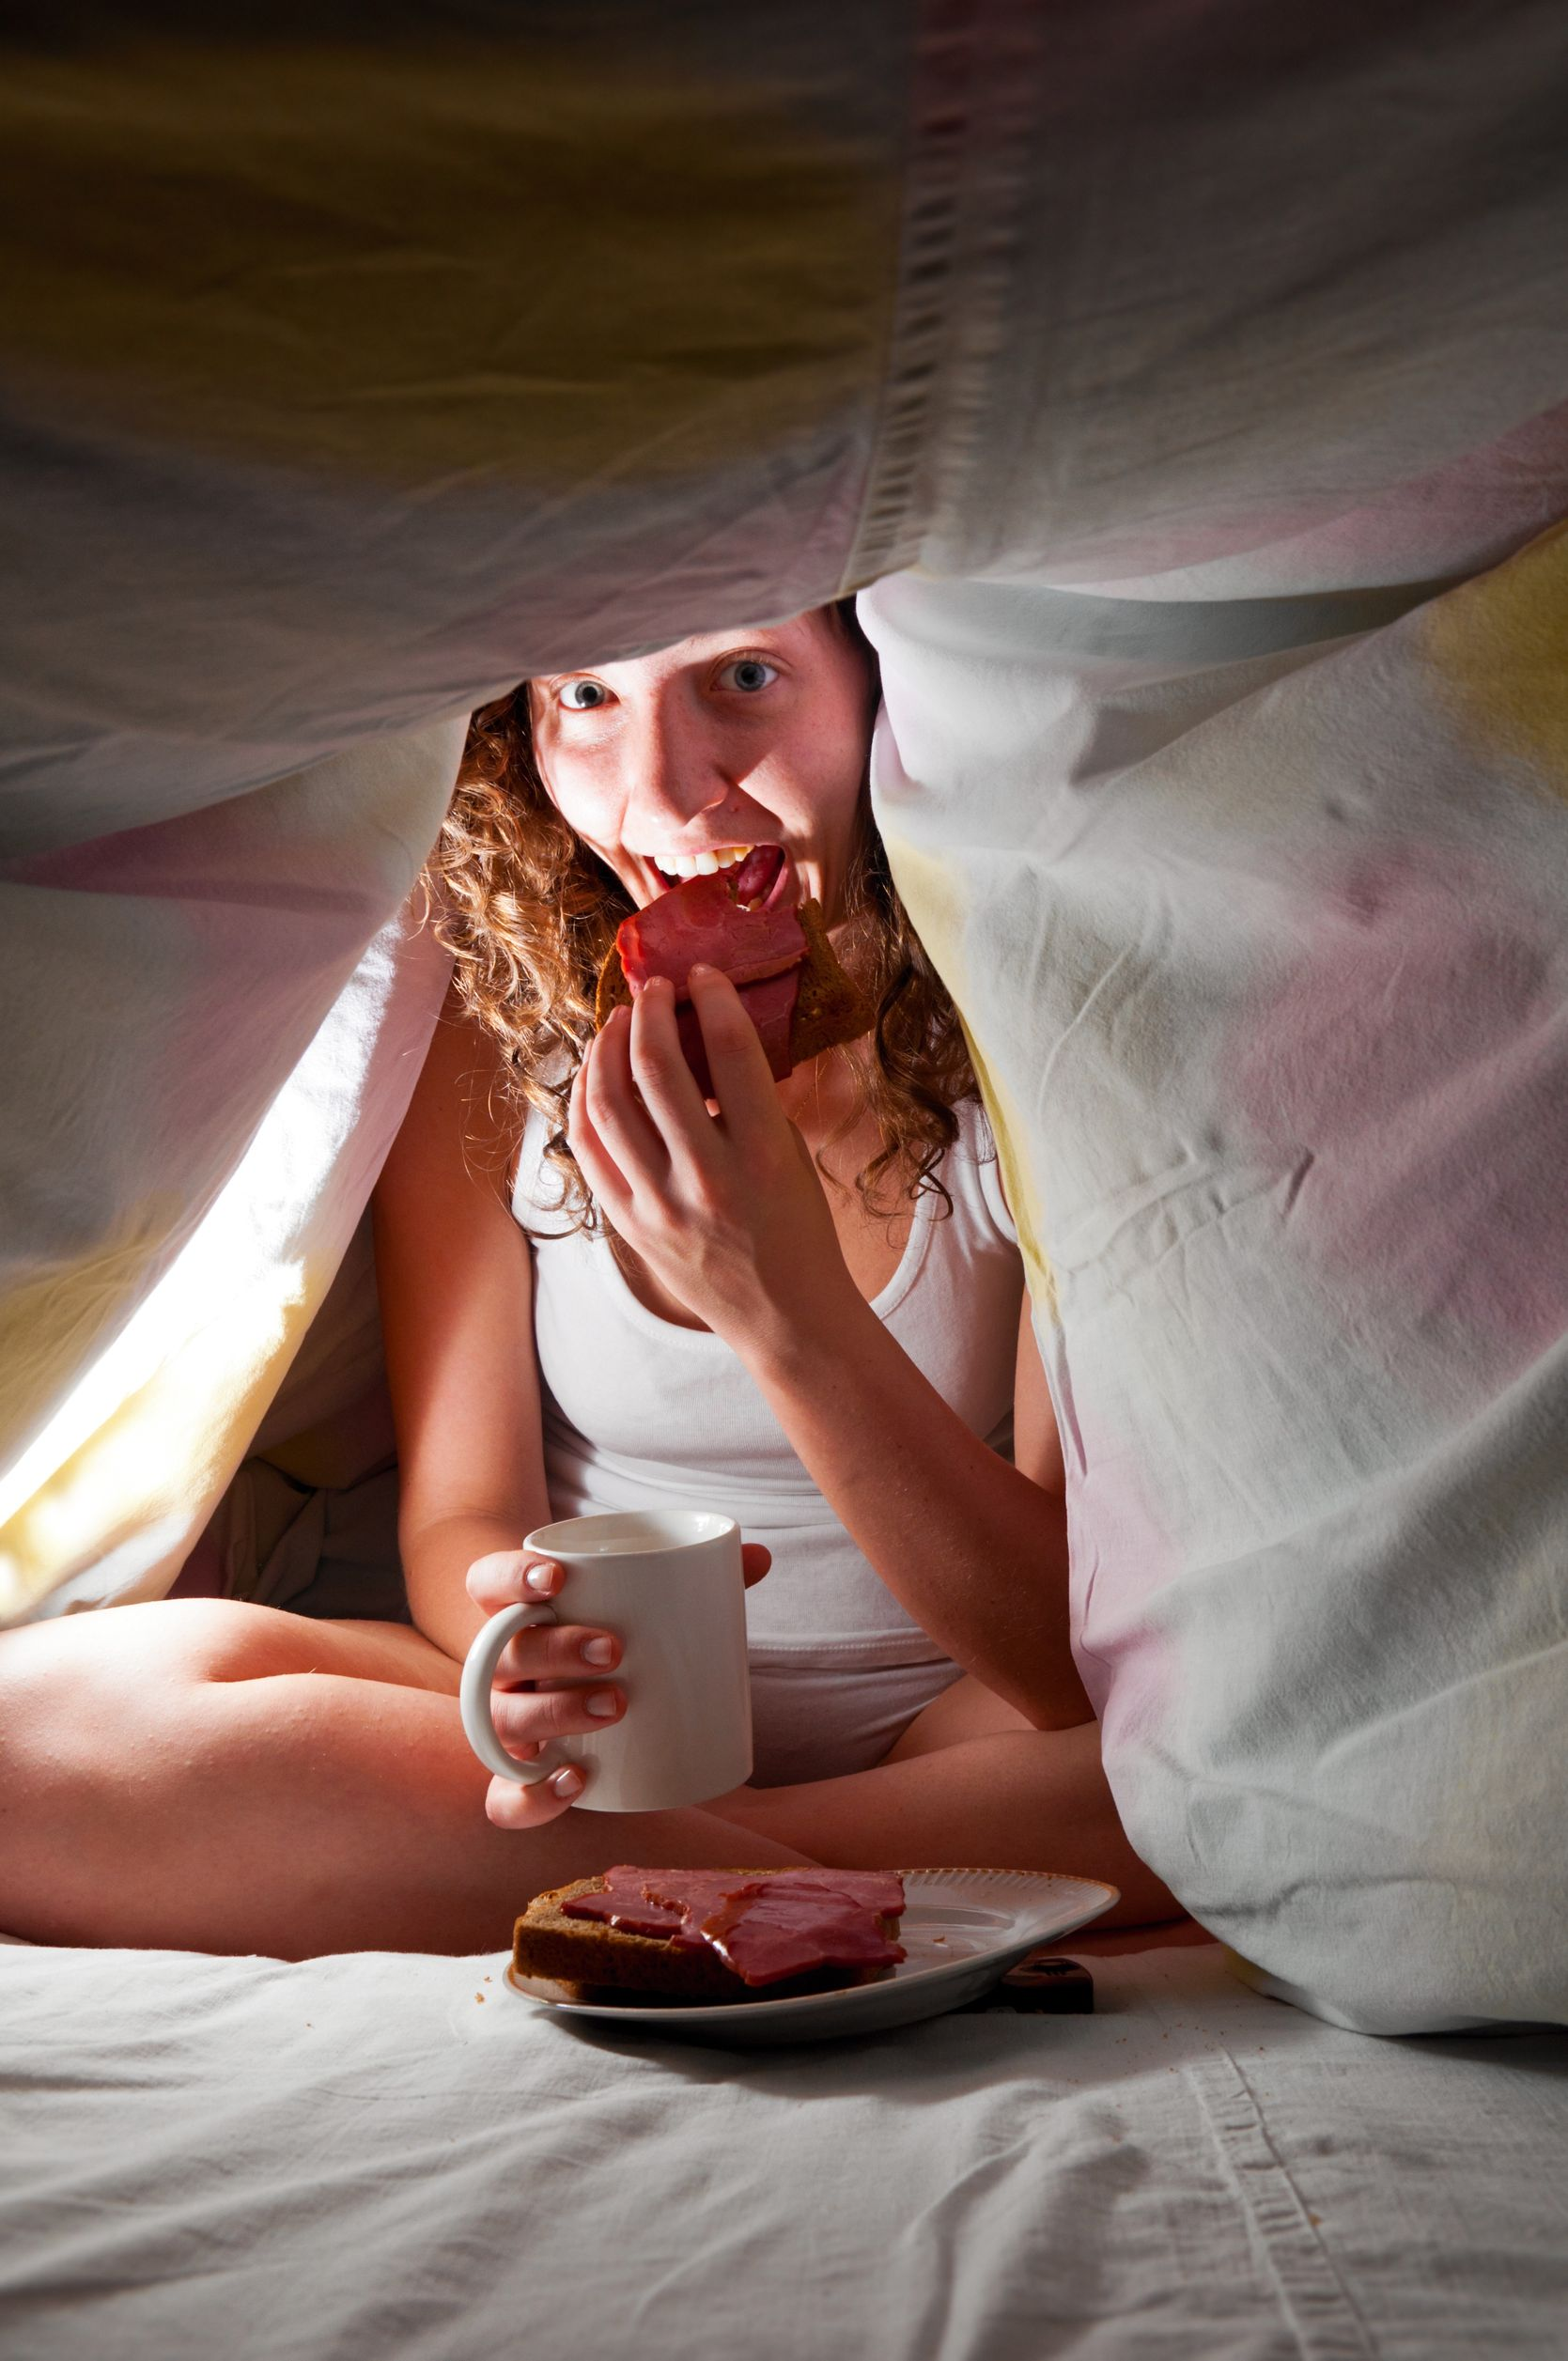 Late Night Hunger: 4 Nighttime Habits That Are Making You Fat